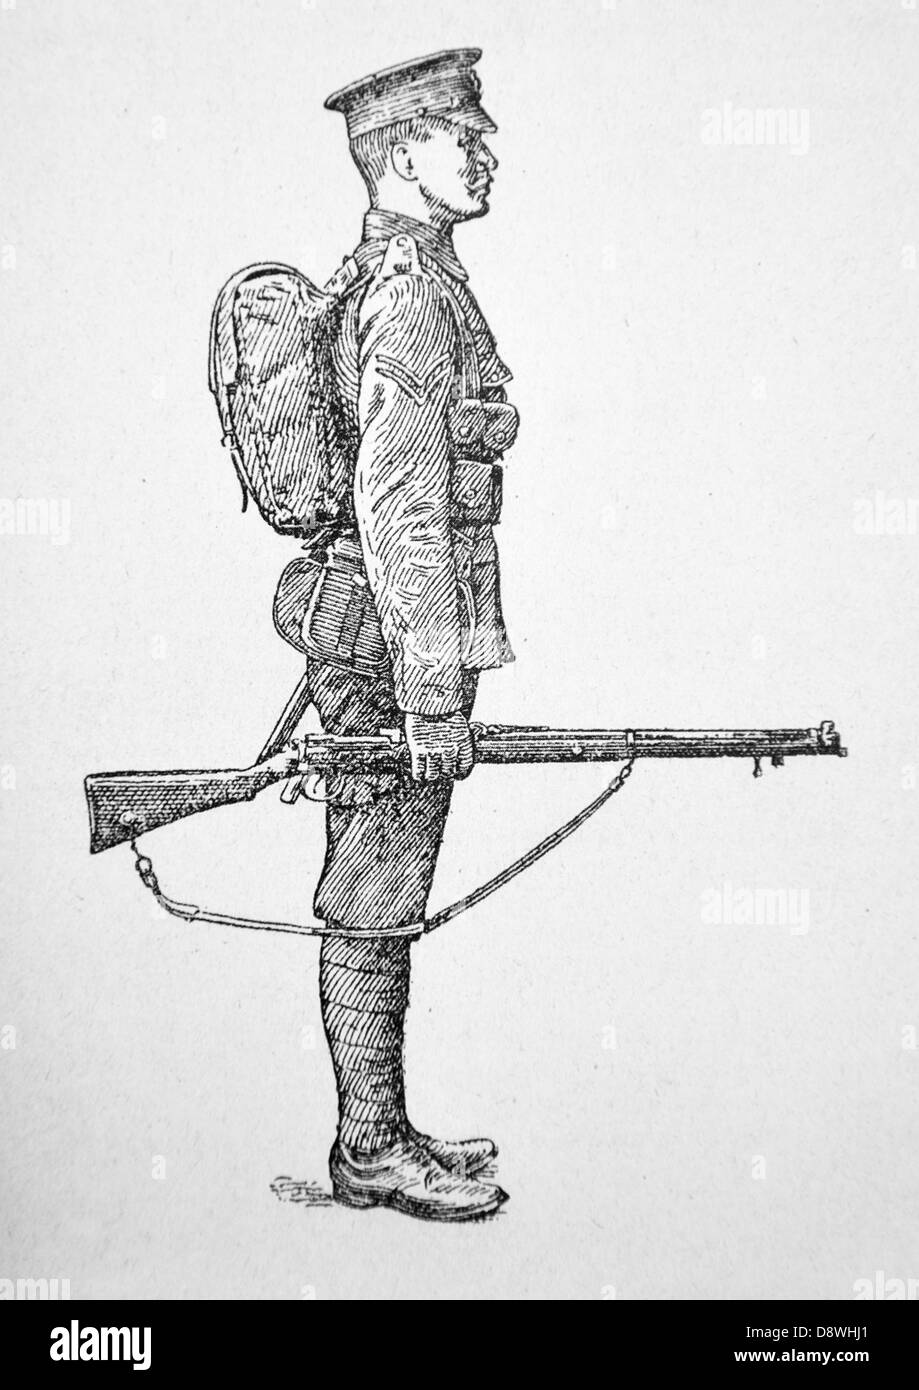 Illustration Of A First World War Soldier Stock Photo 57110985 Alamy